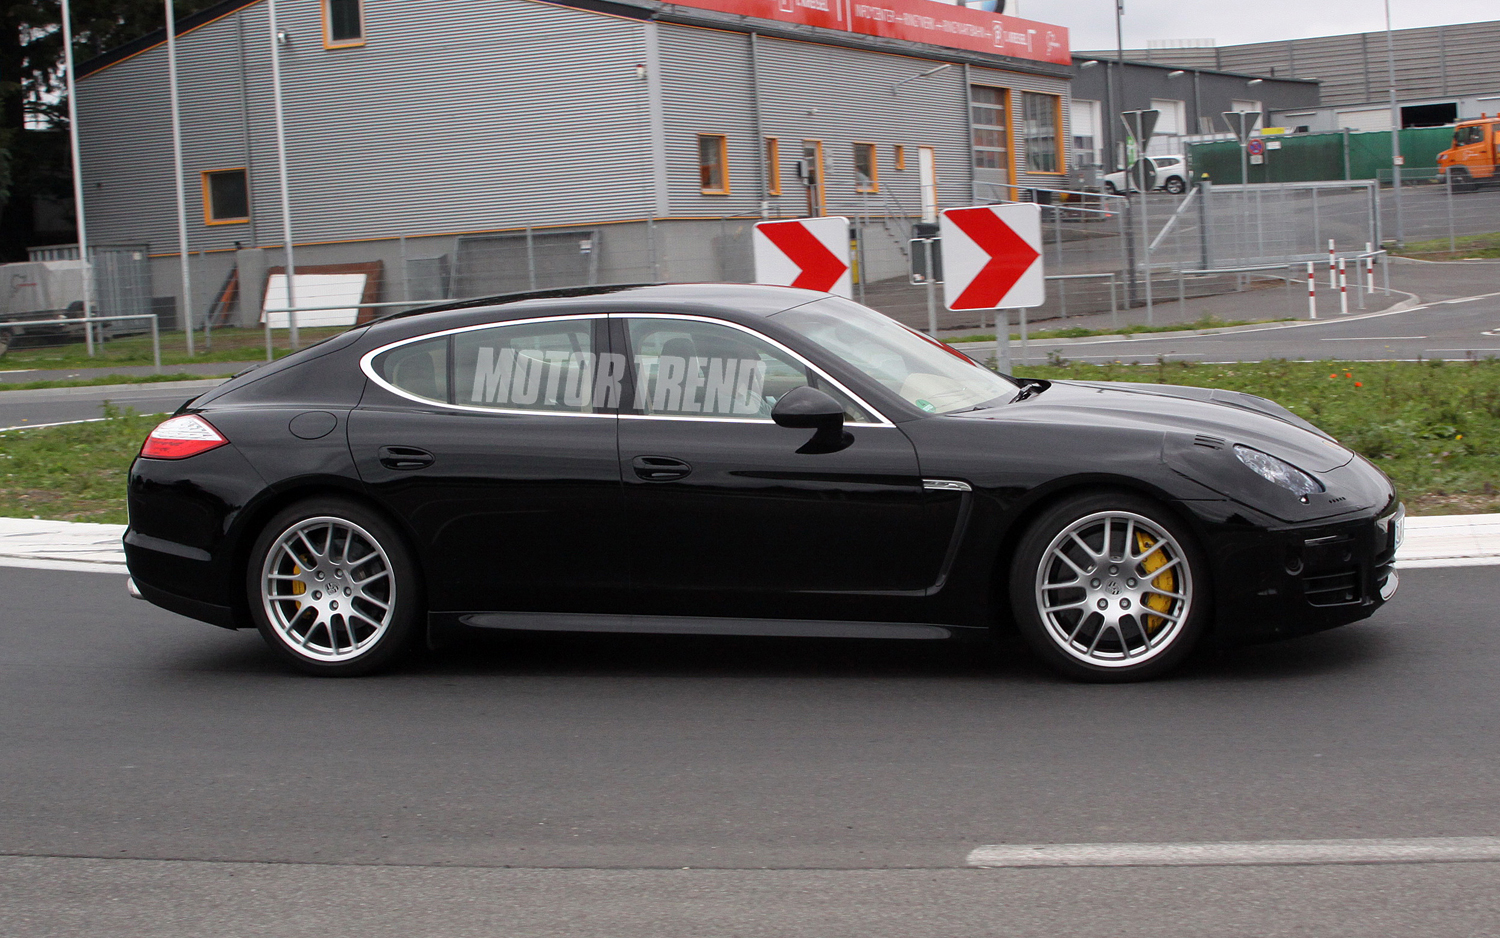 2012 Porsche Panamera facelift Side view